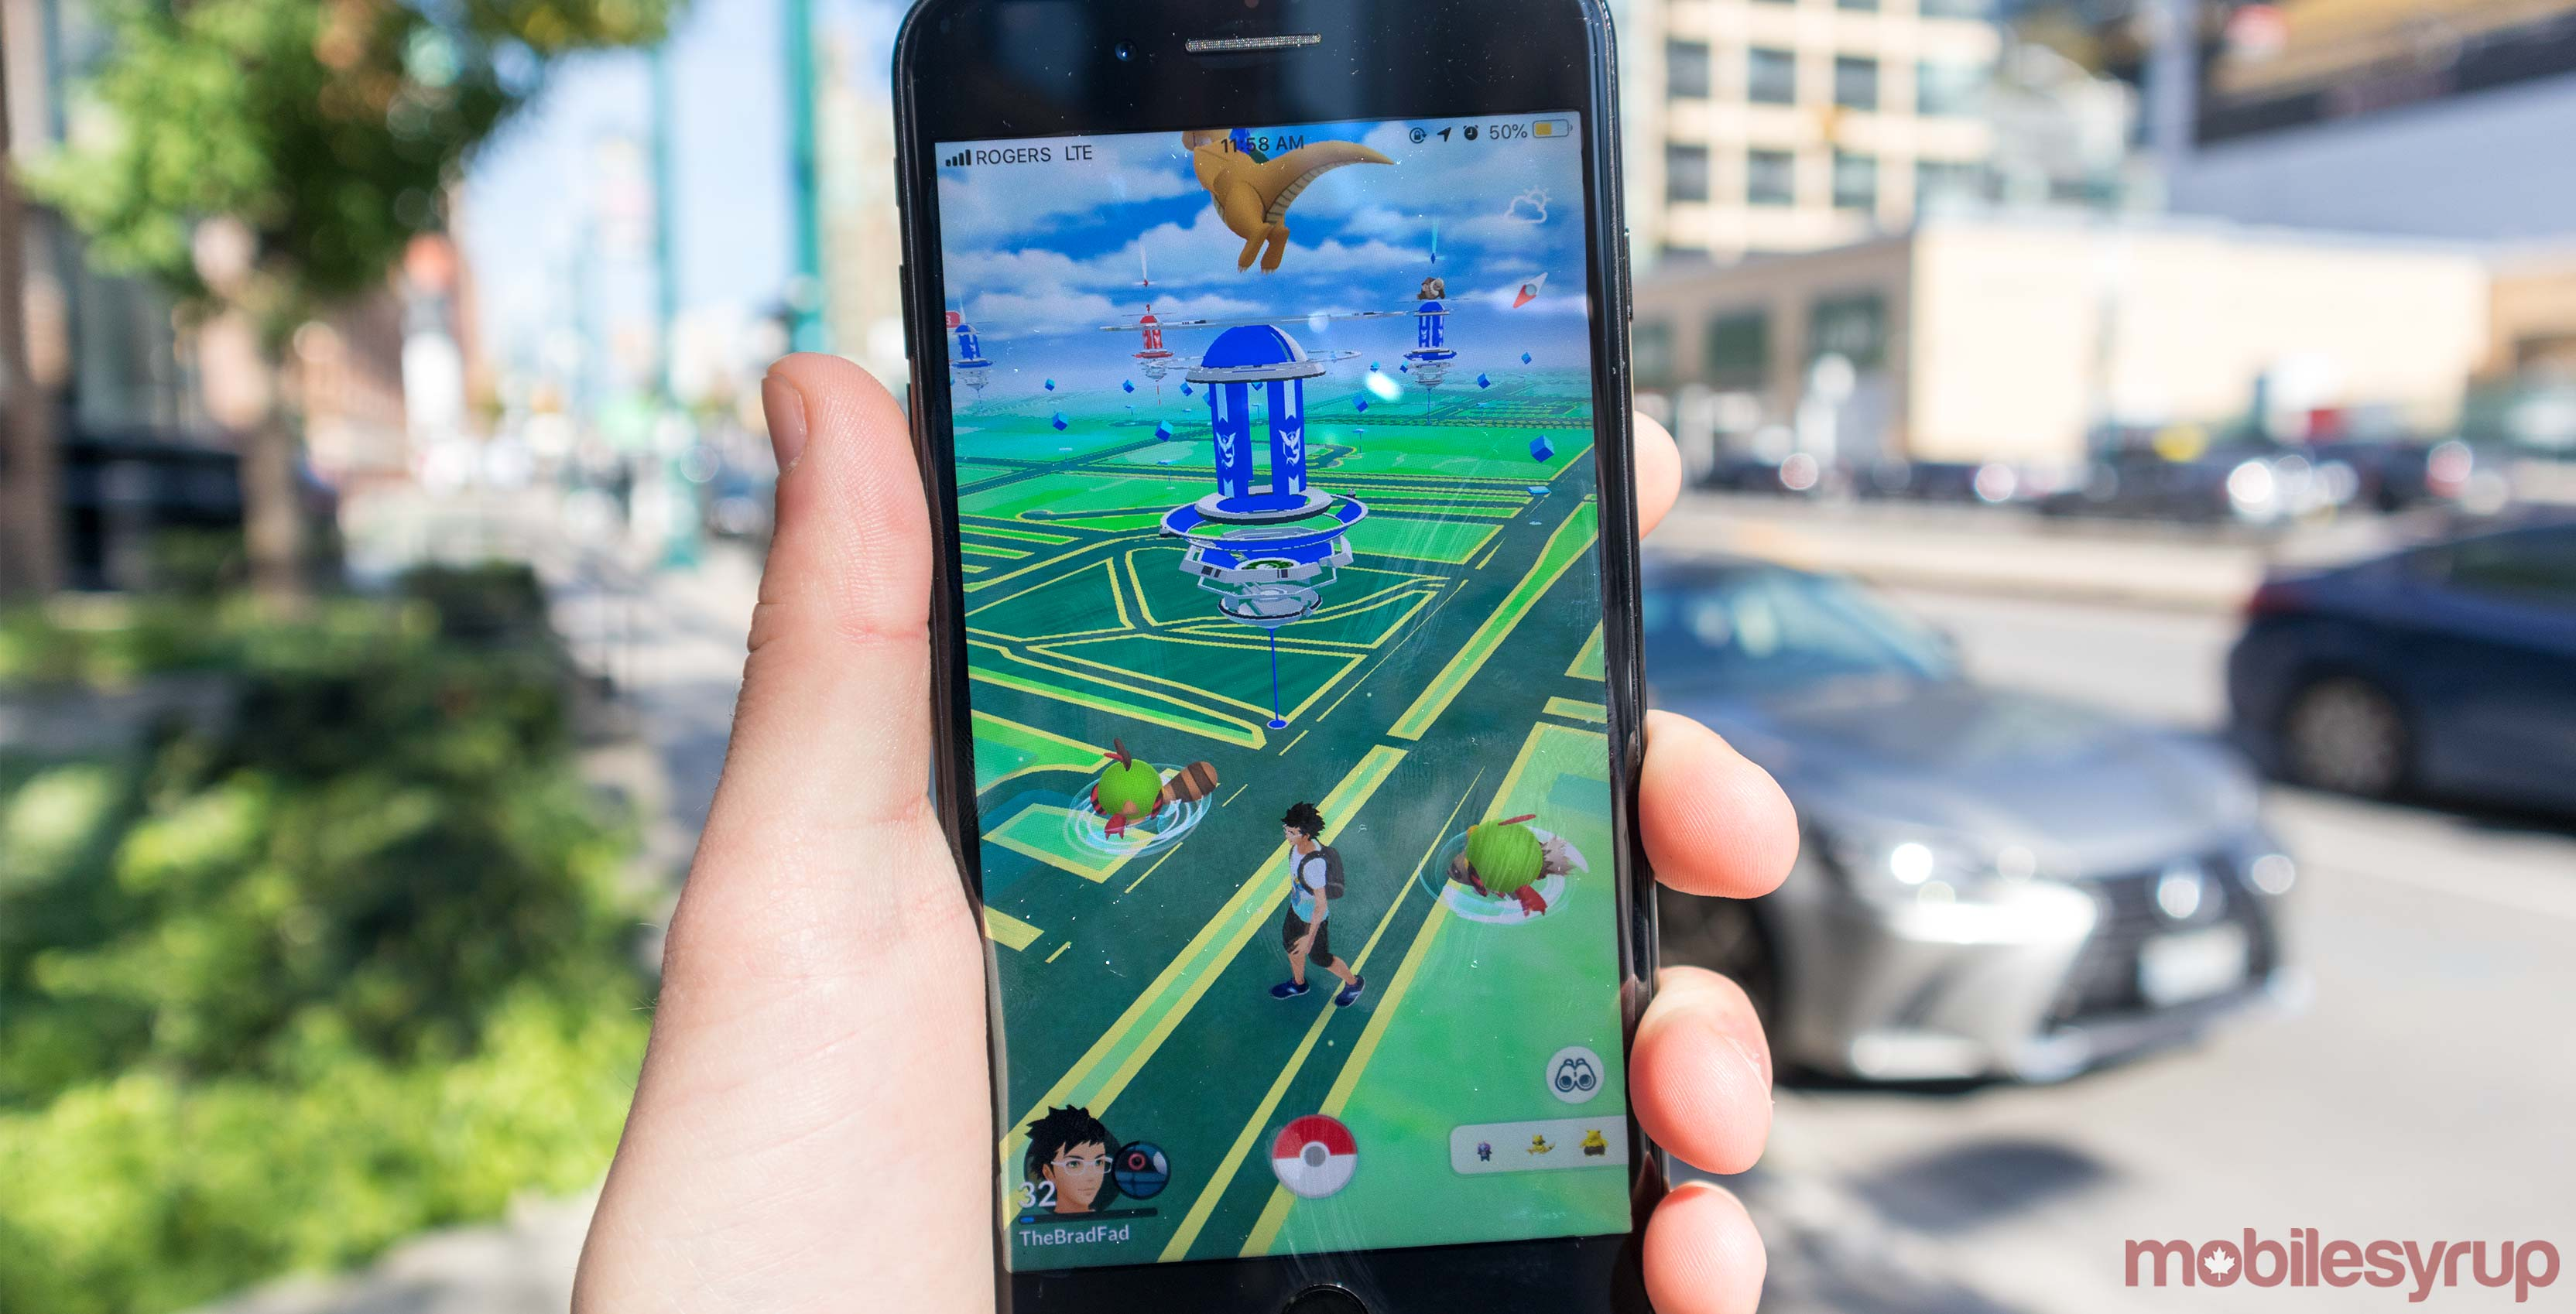 Pokémon Go will finally get background step-count tracking with next update